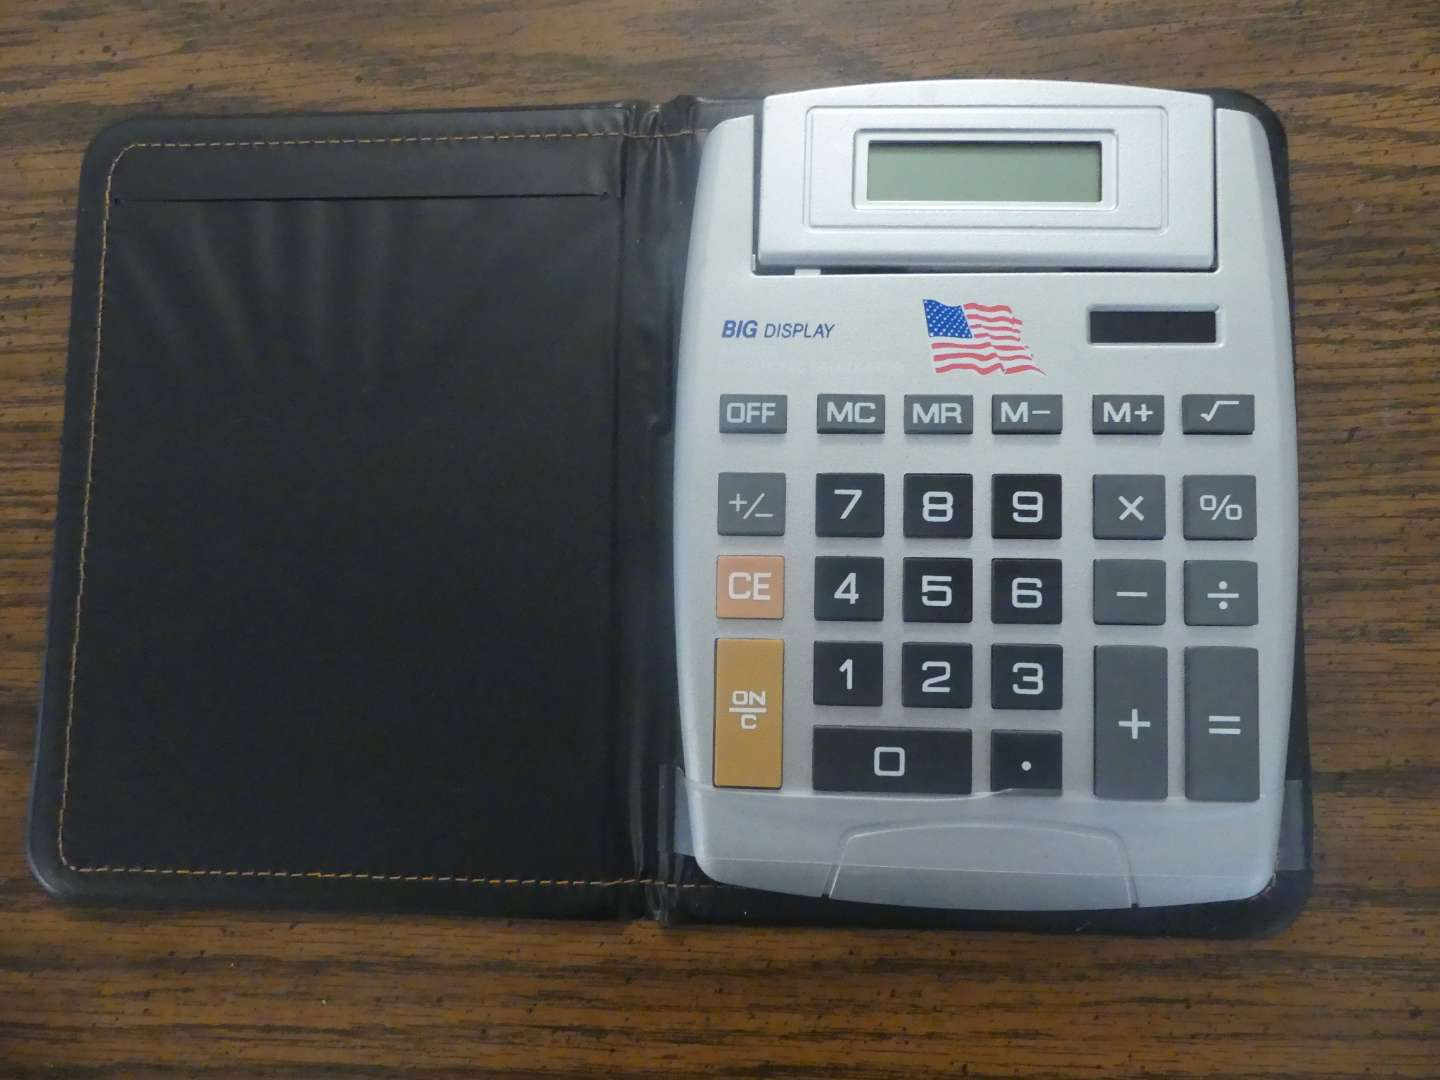 Lot #78 Big Display 8-Digit Electronic Calculator in Case